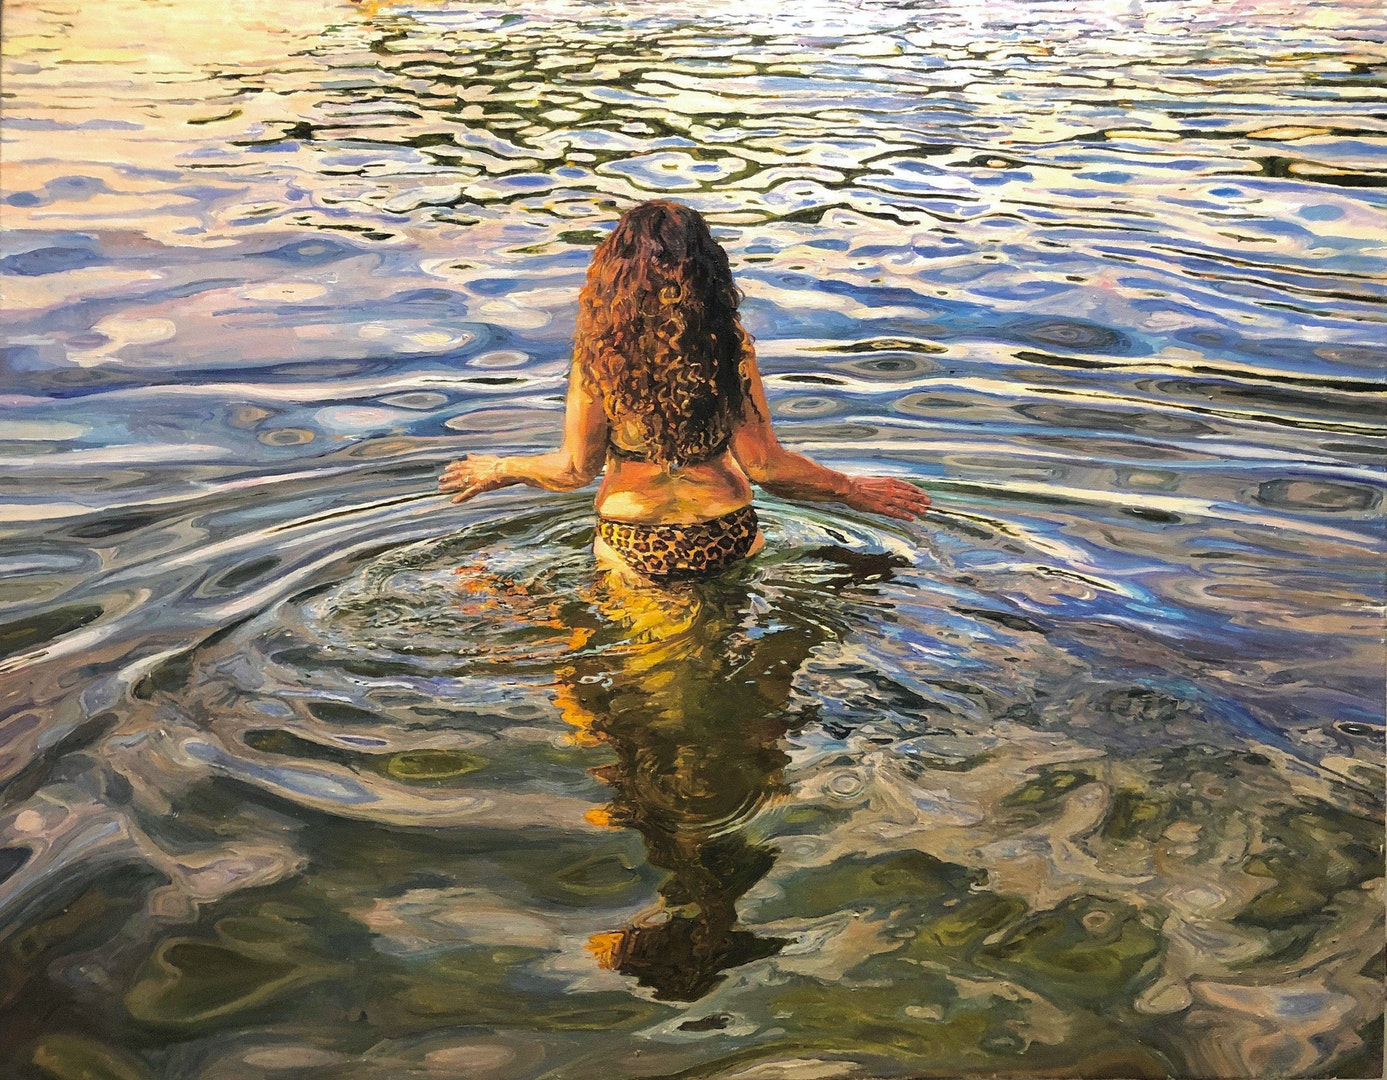 'To Wander in the Water', Lucille Dweck, Oil on canvas, 94 x 119 cm